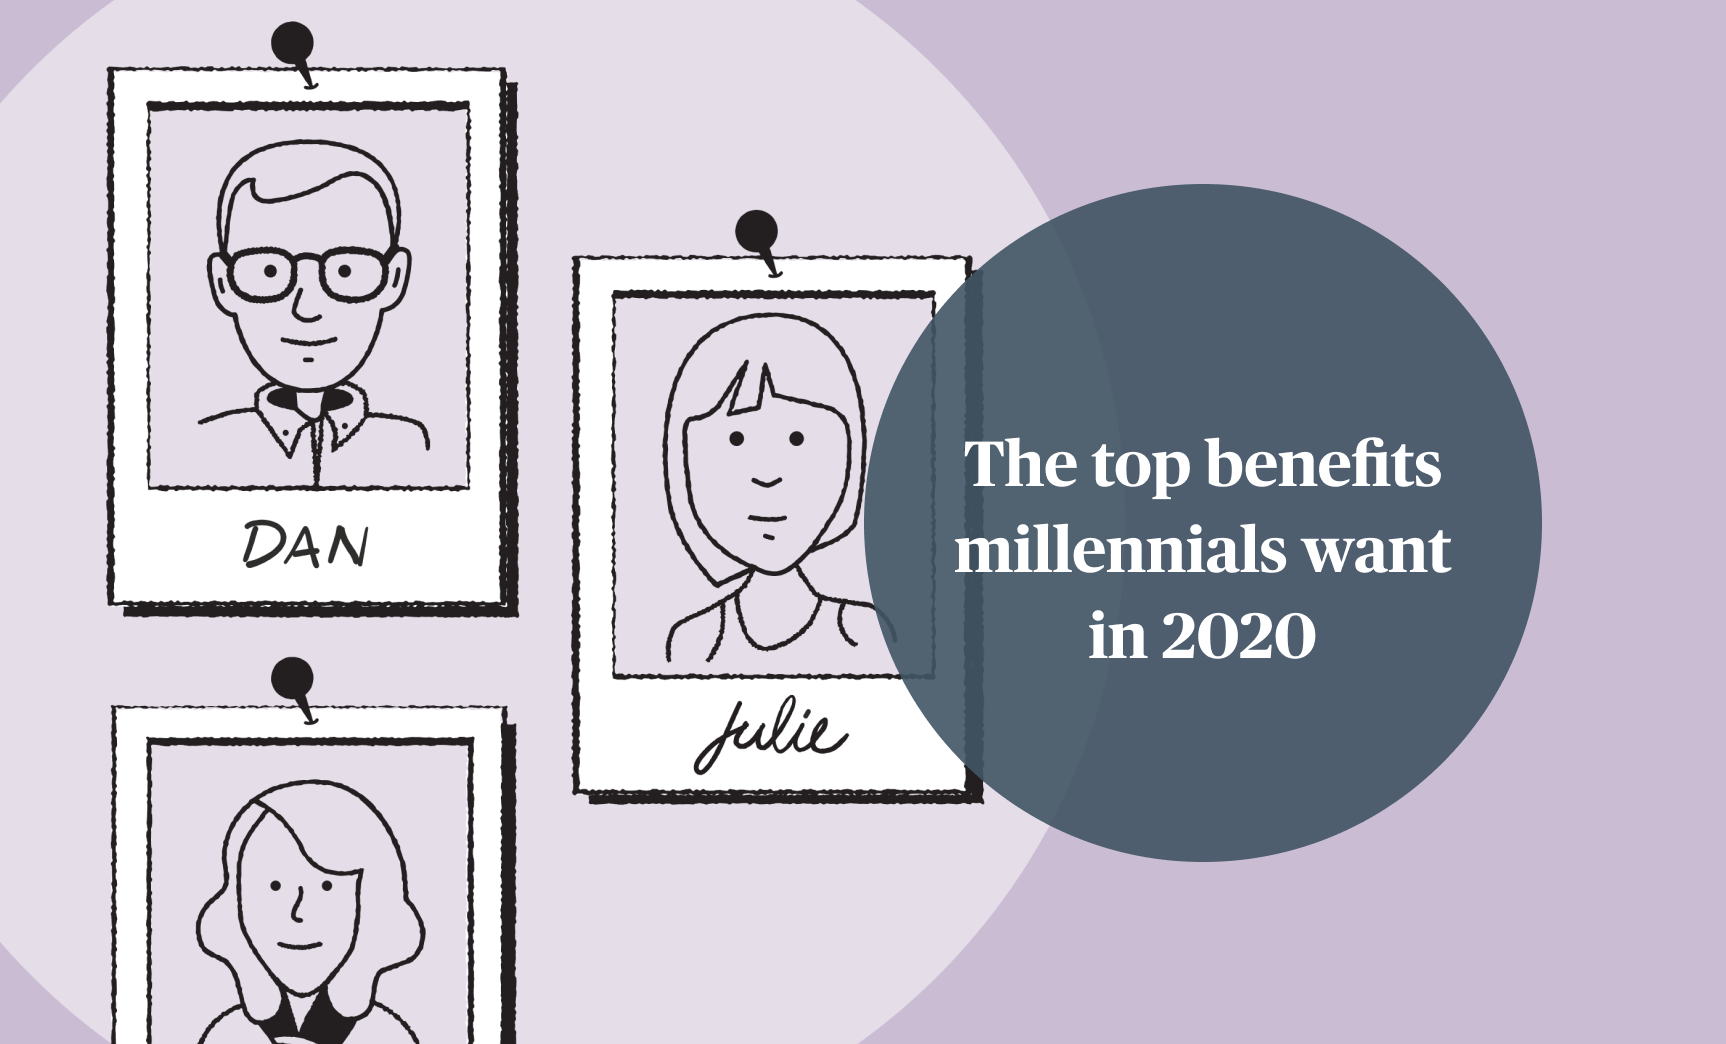 The top benefits millennials want in 2020